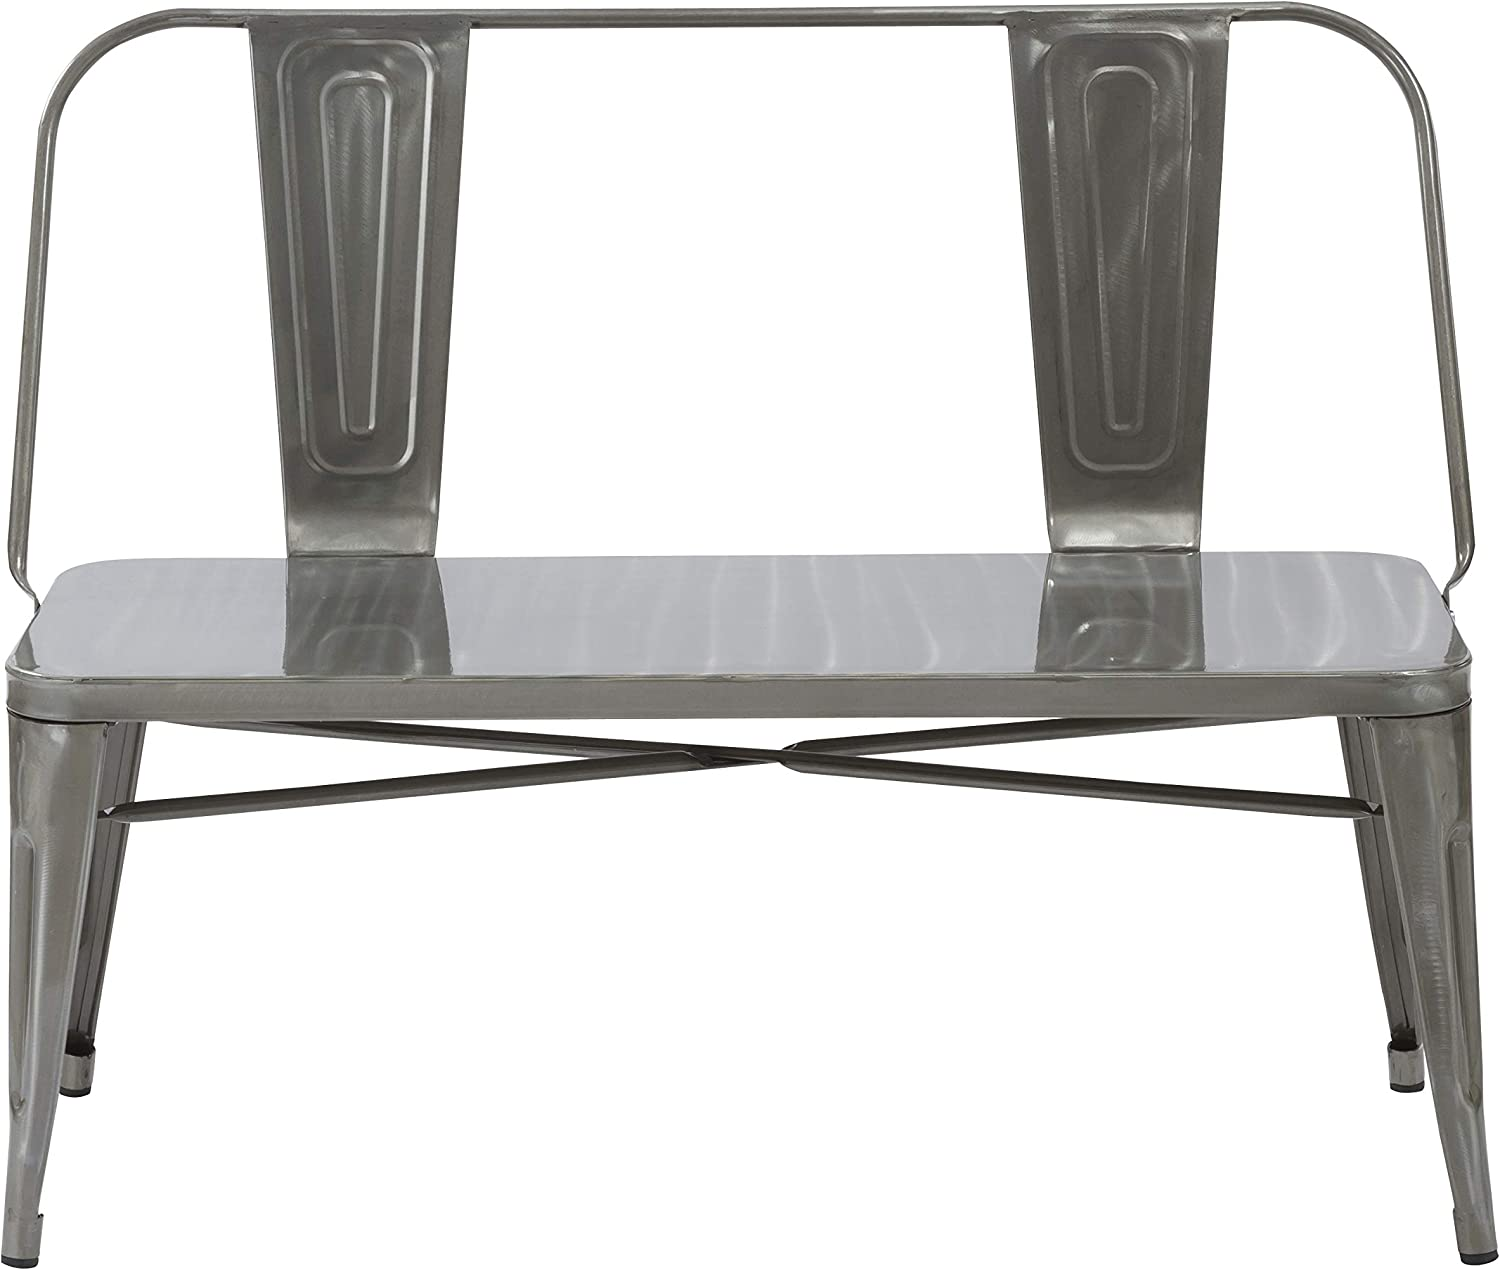 BTEXPERT Industrial Dining Chair Bench Full Back Seat, Distressed Metal, 5061DM